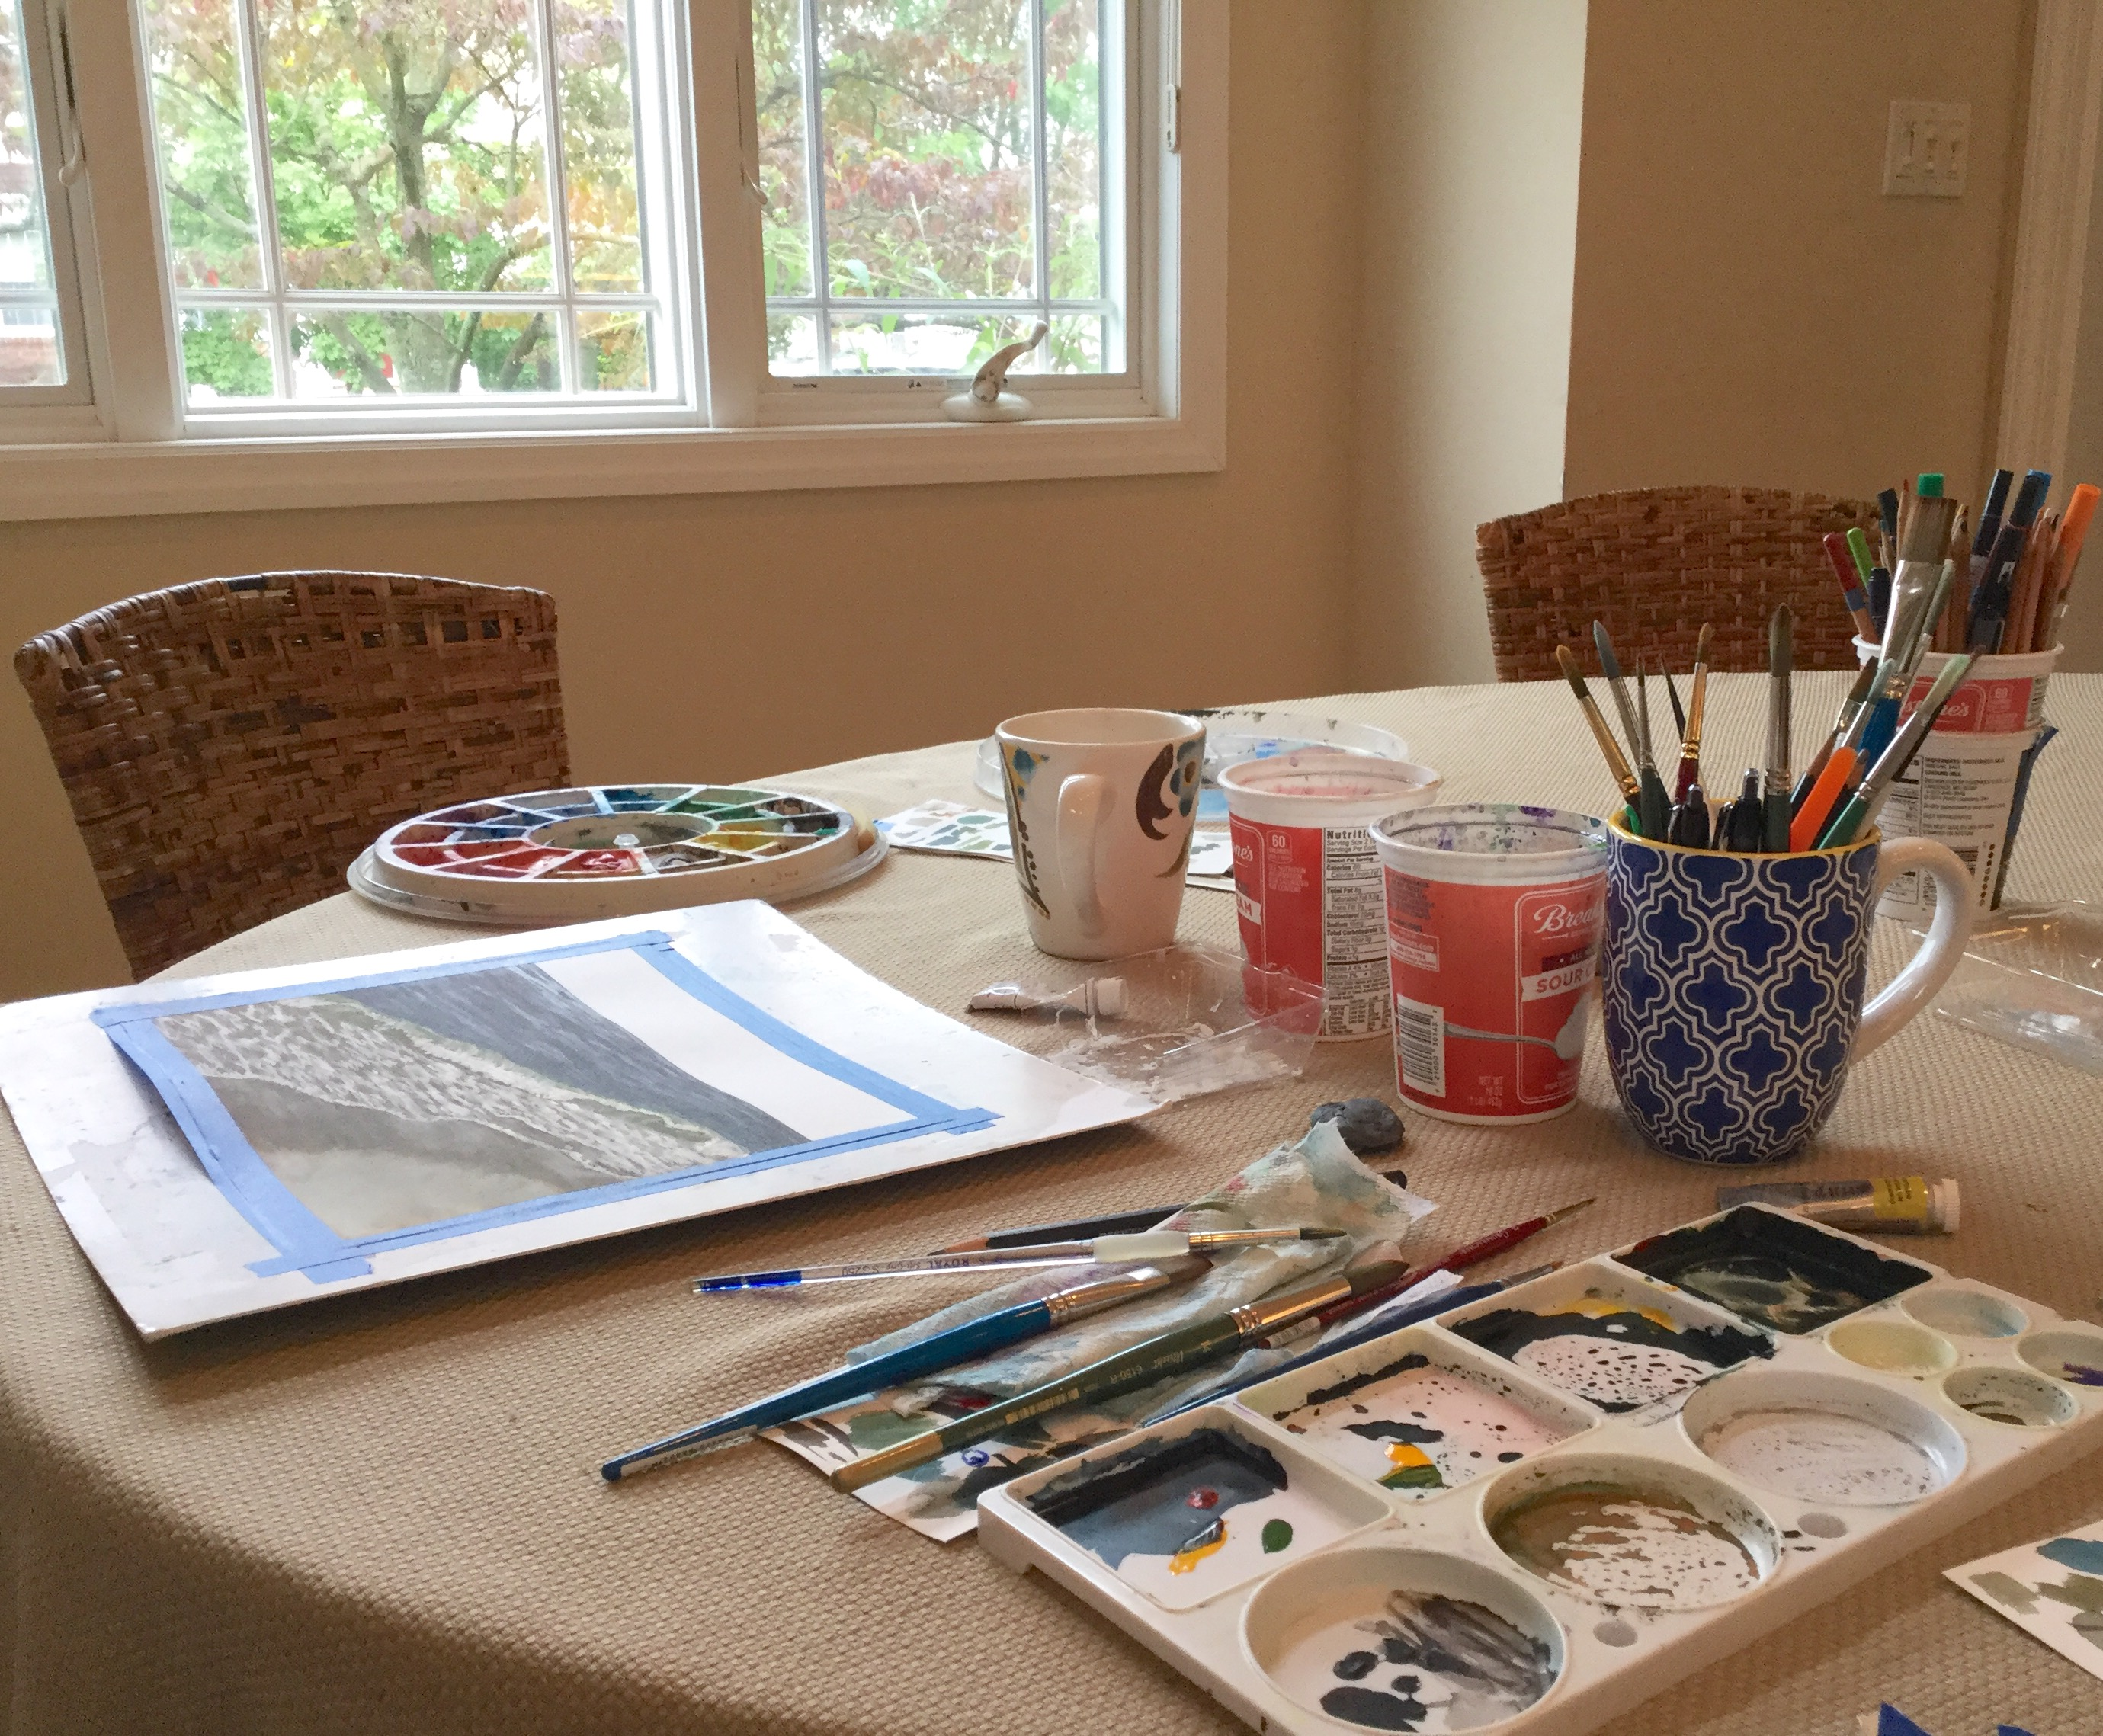 Painting every morning | Eileen McKenna watercolor artist